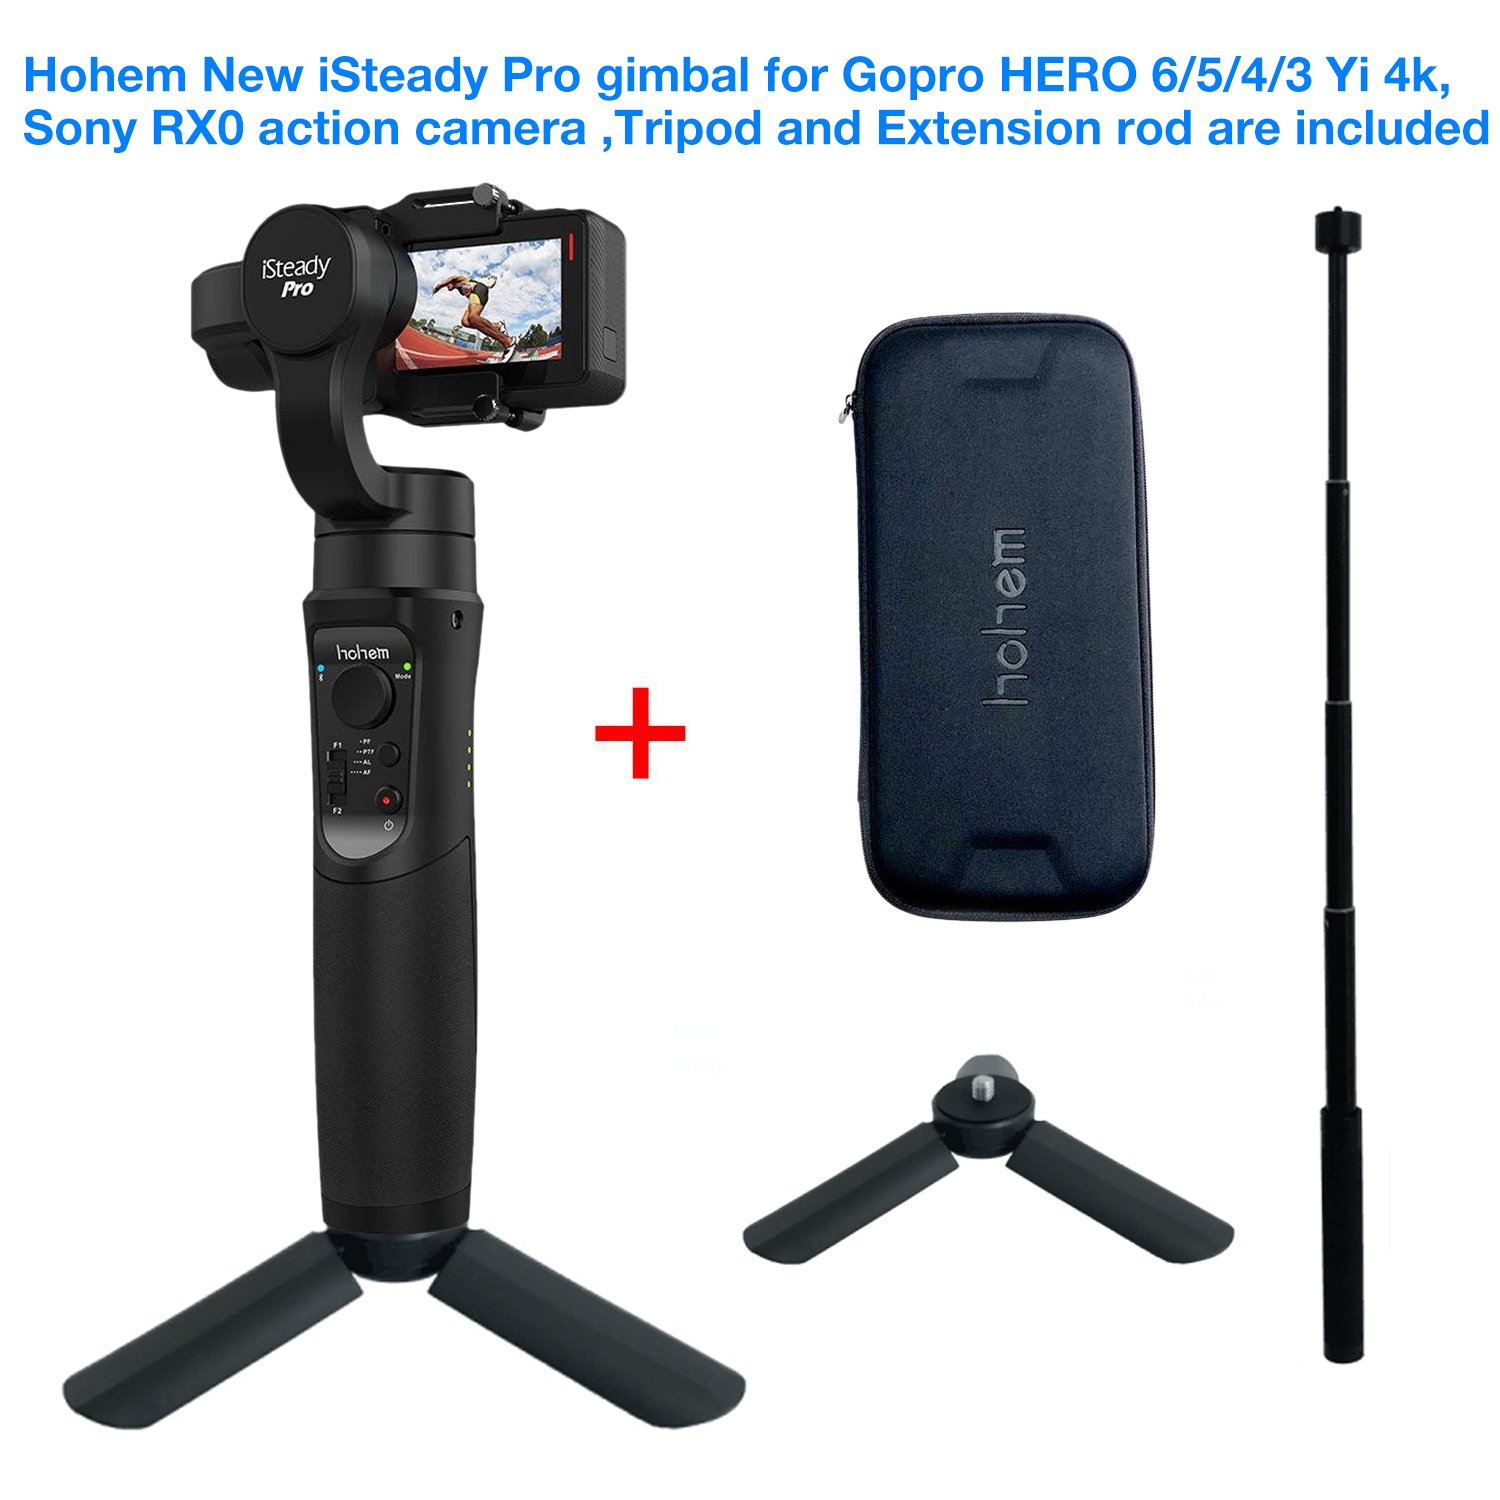 Hohem iSteady Pro 3 gimbal for Gopro Hero 6/5/4/3,SJcam, Yi 4K or similar size for Action camera,including tripod stand and extension Rod